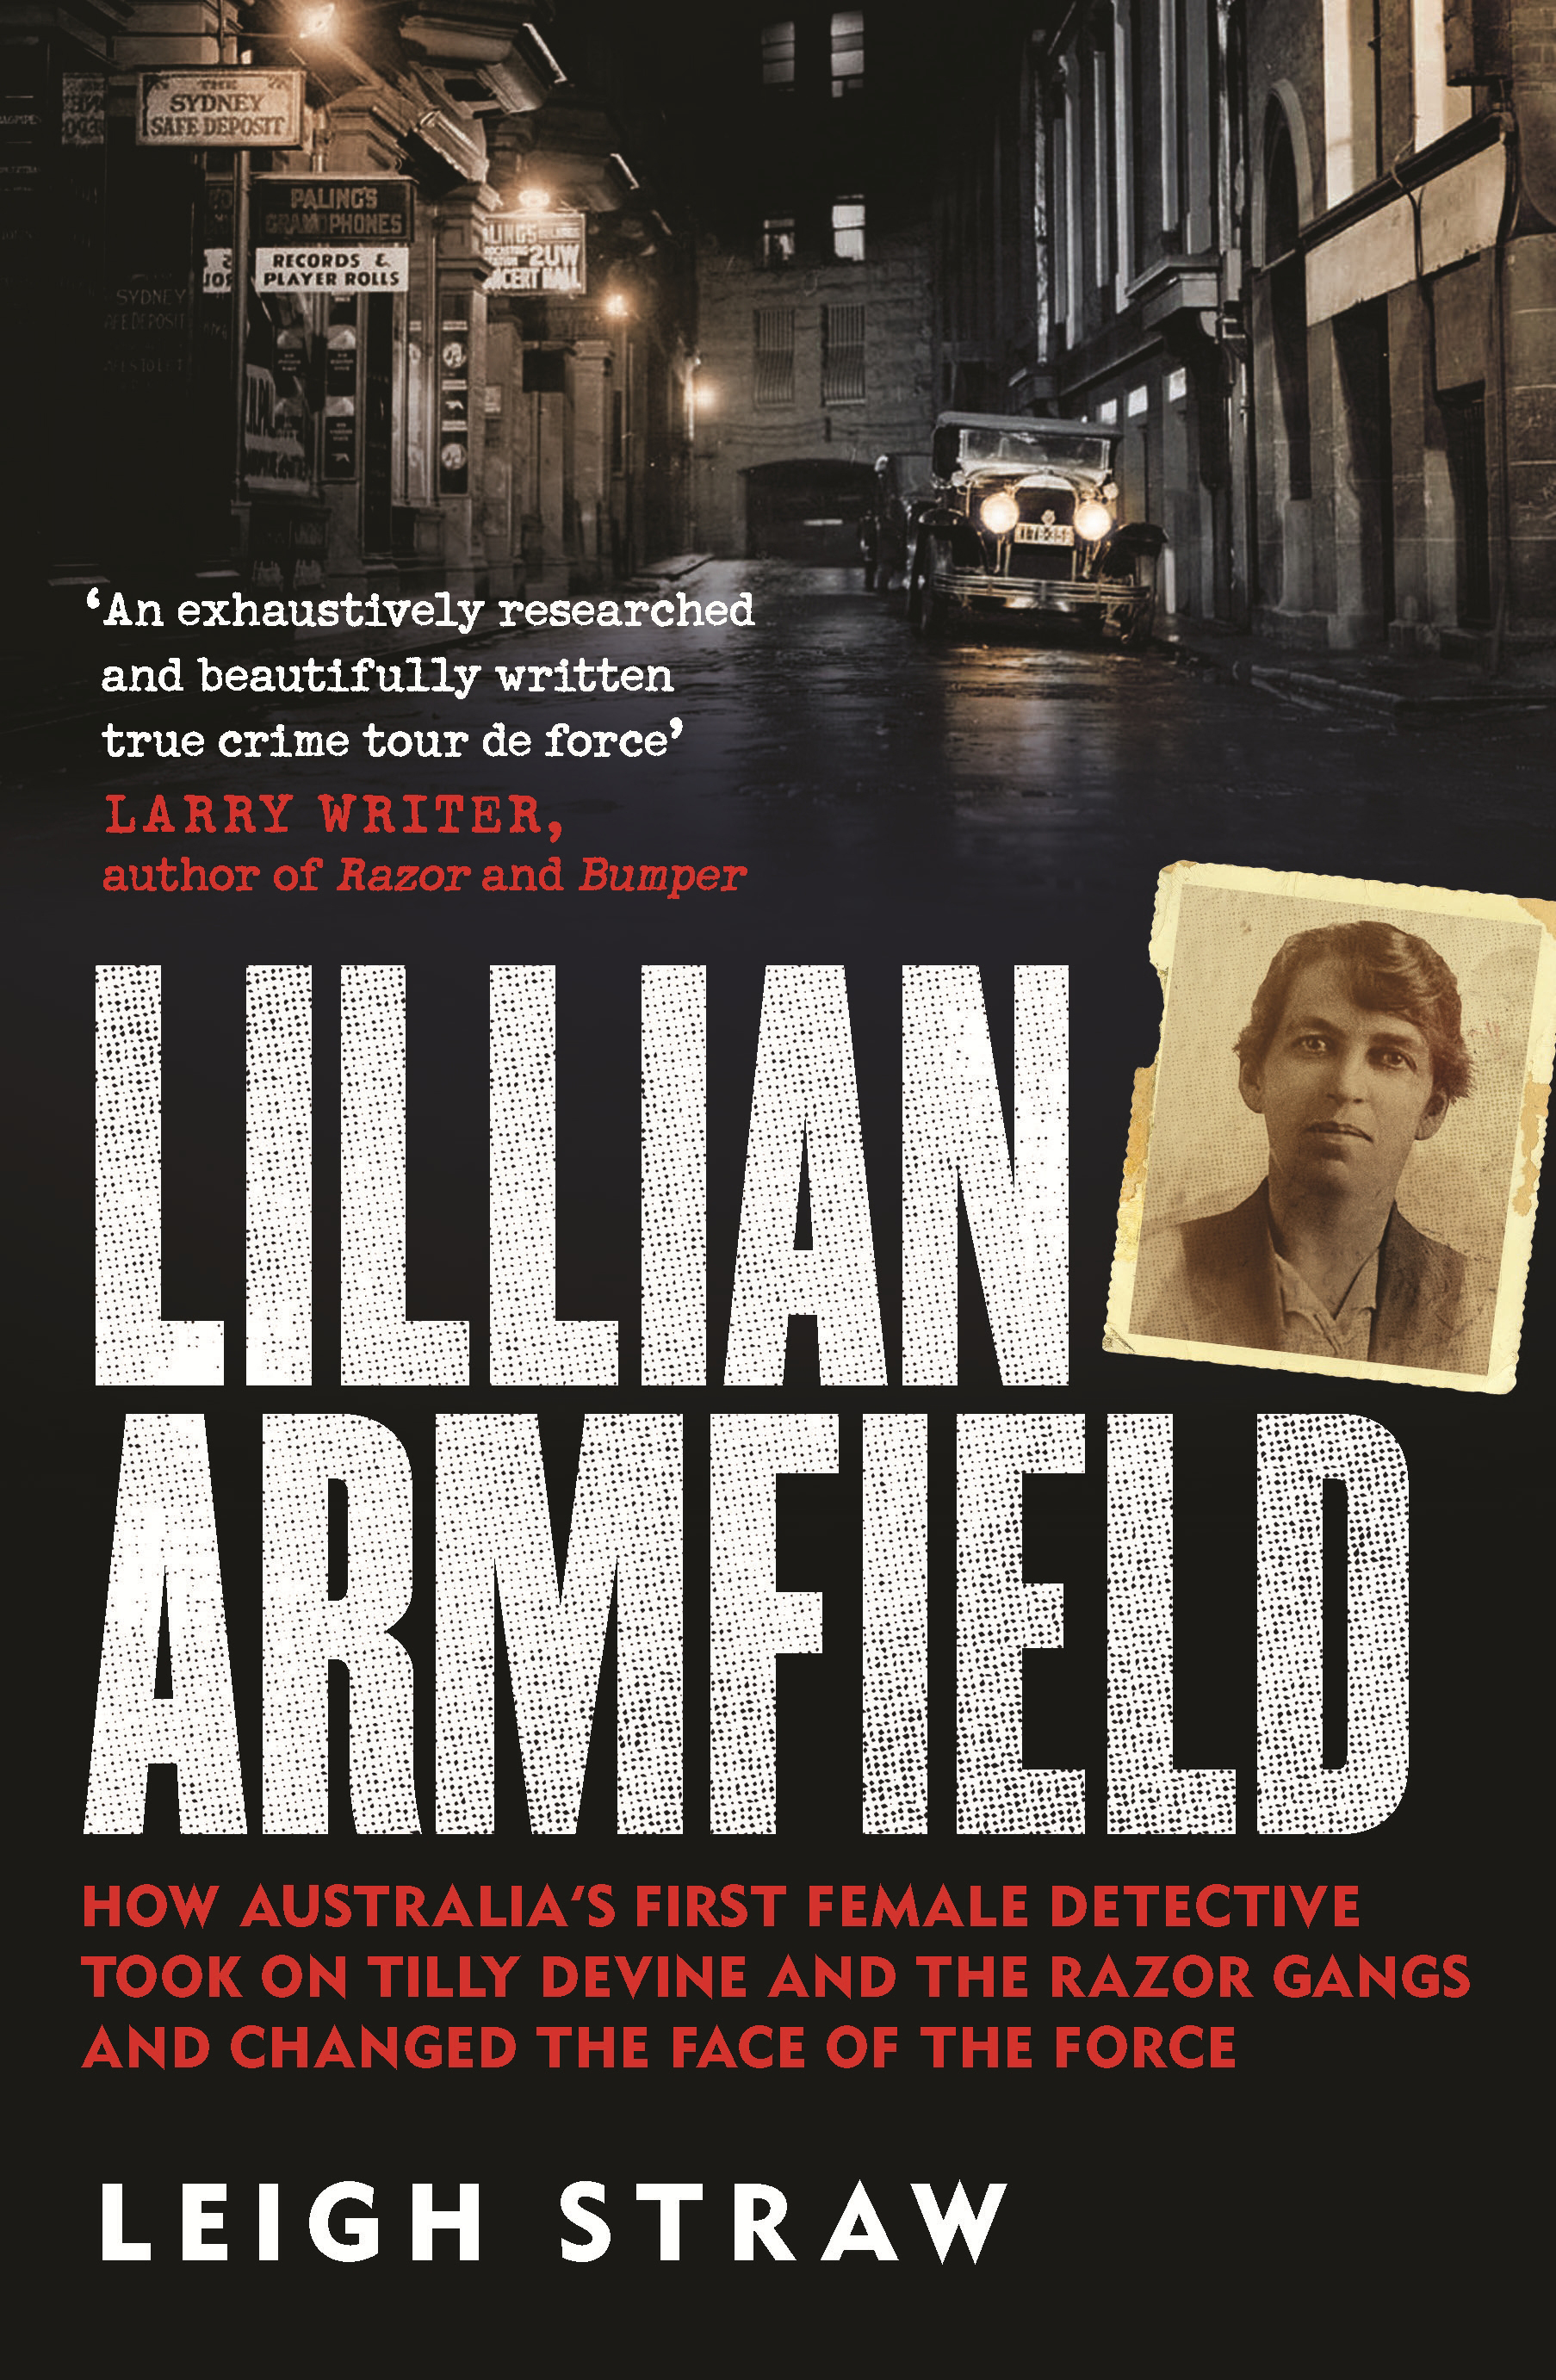 Cover image of 'Lillian Armfield' by Leigh Straw